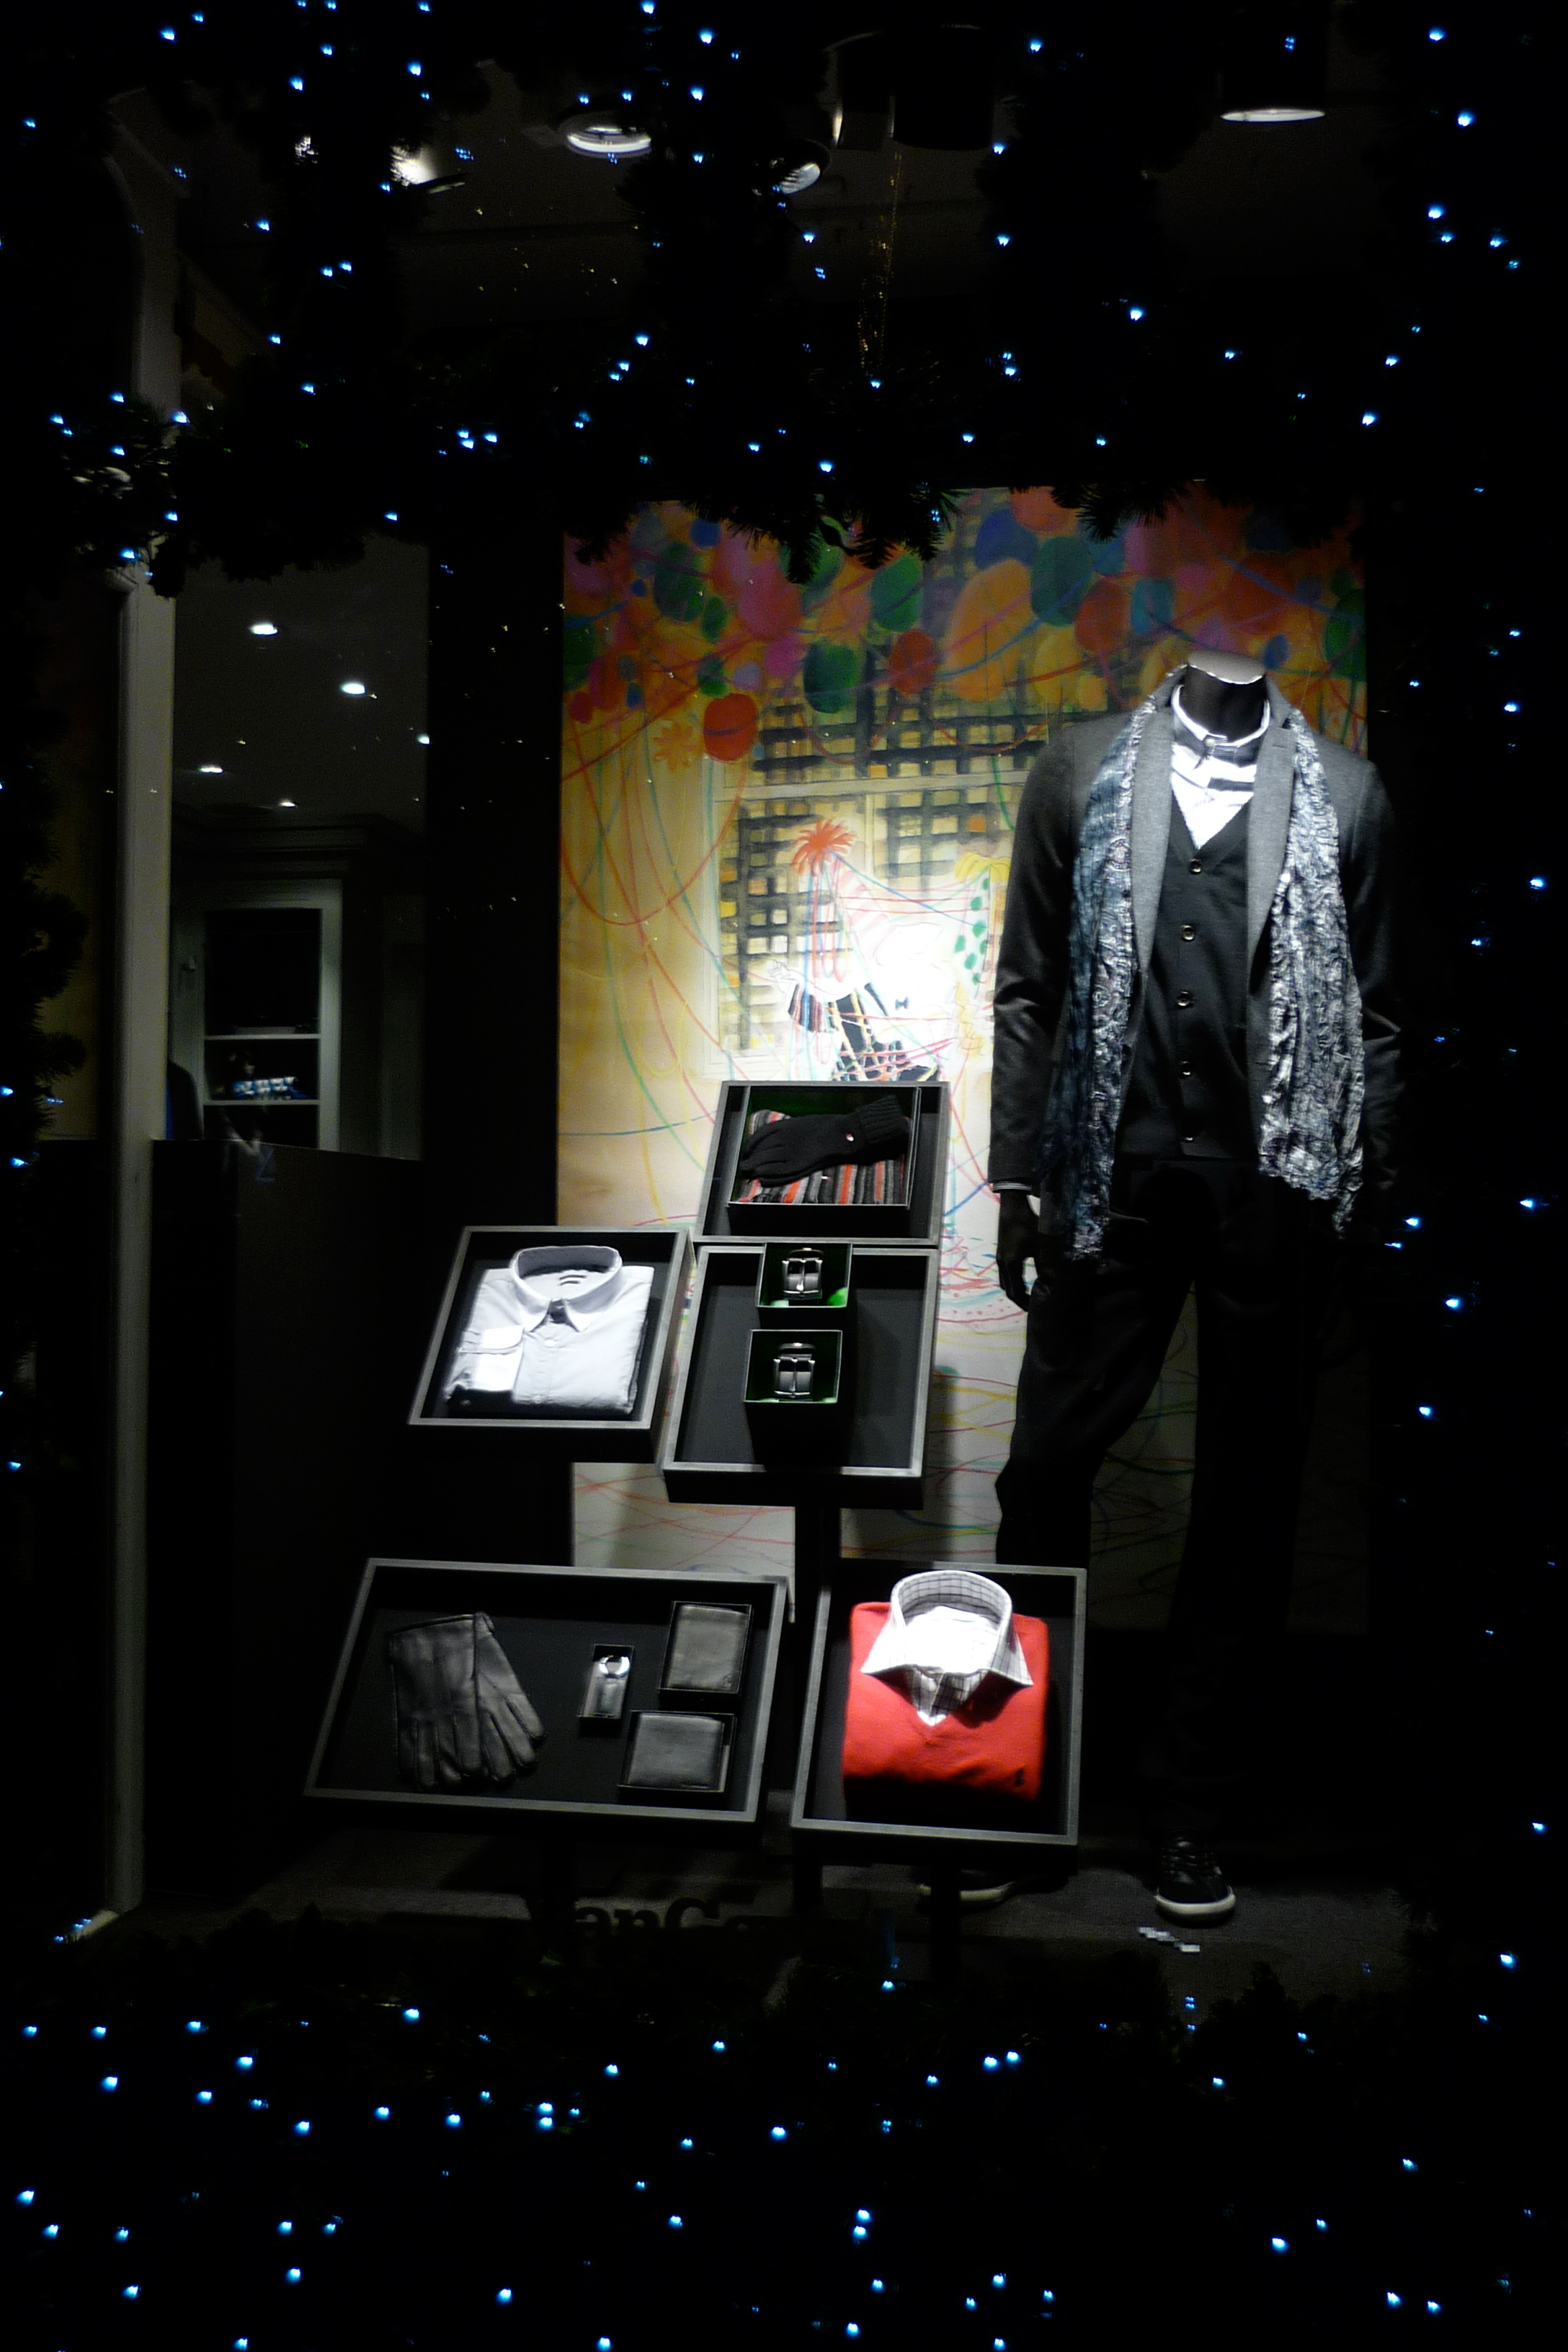 - New YearVan Gestelwindow A festive window was made for men's boutique Van Gestel. Lots of lights and custom made displays with a vintage newyear poster as a backdrop, set the scene.This made a classic newyear feel come to life.